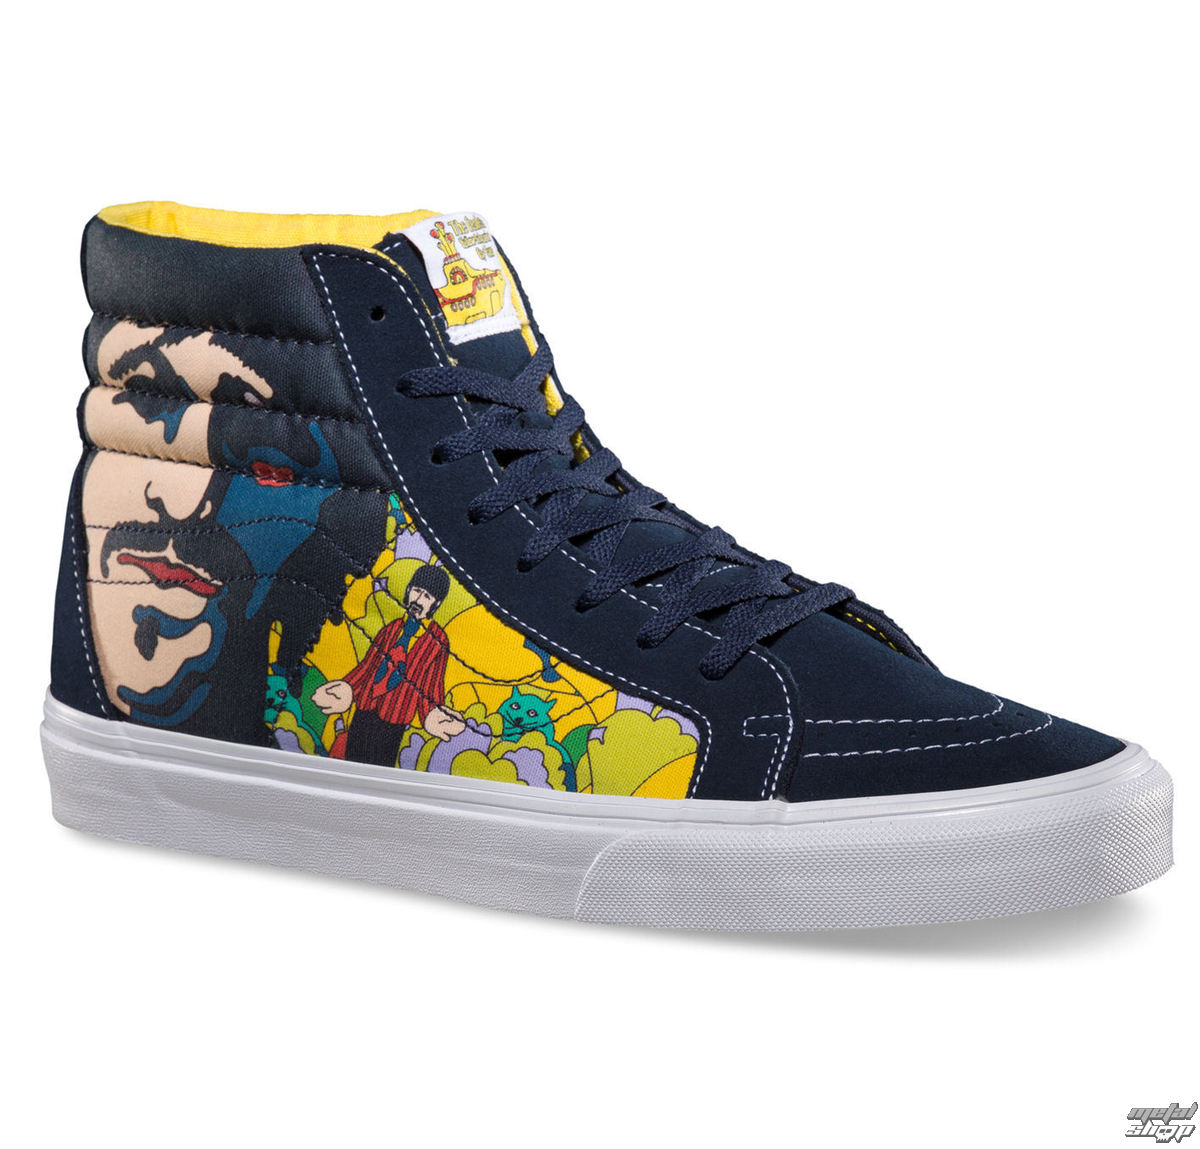 boty VANS - SK8-HI Reissue (The Beatles) - Faces Dres